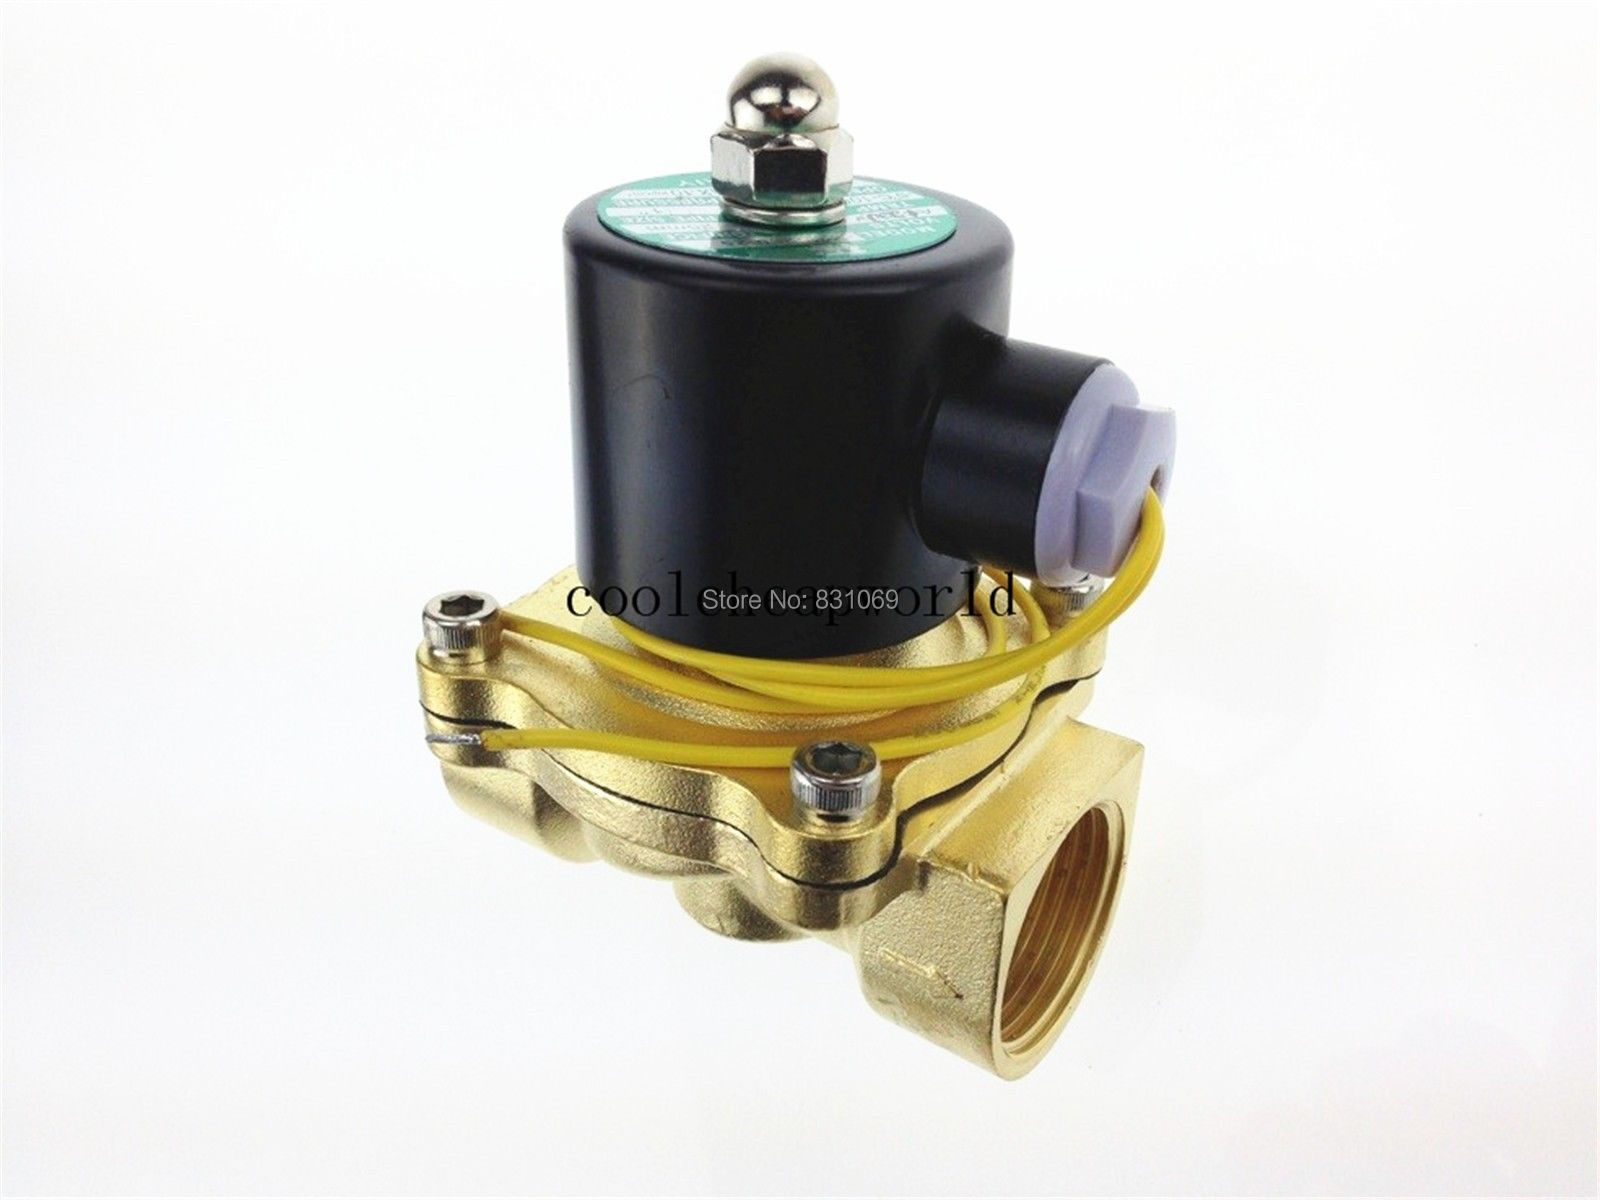 1piece 2W 250 25 220V AC 1 Electric Solenoid Valve Water Air N C NC Normal